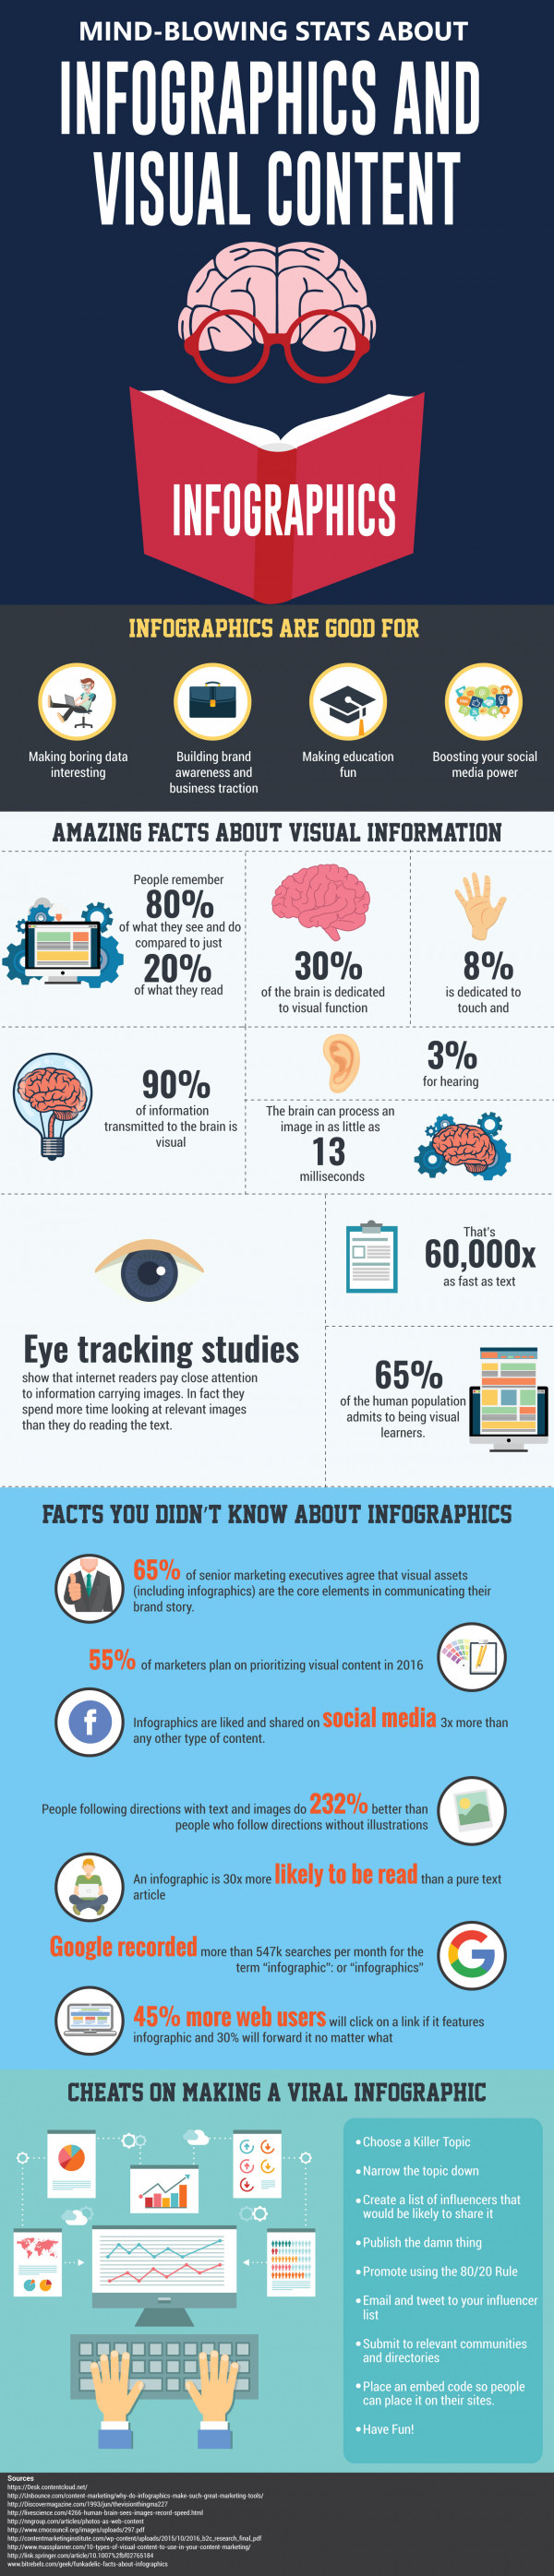 Mindblowing stats about Infographics and Visual content